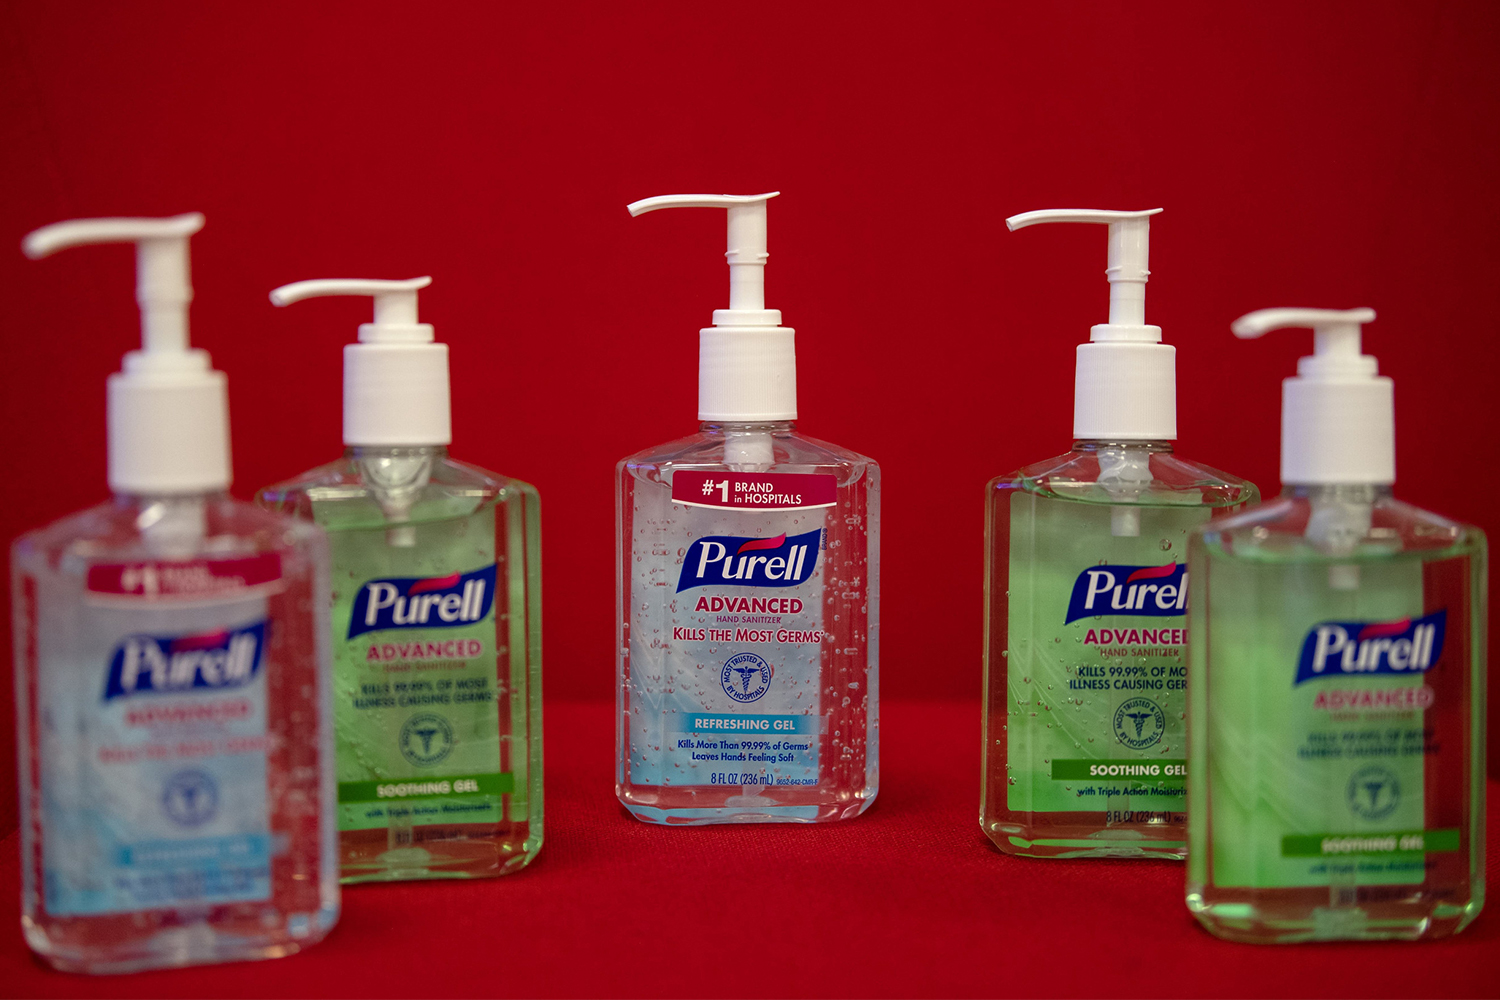 Five bottles of hand sanitizer